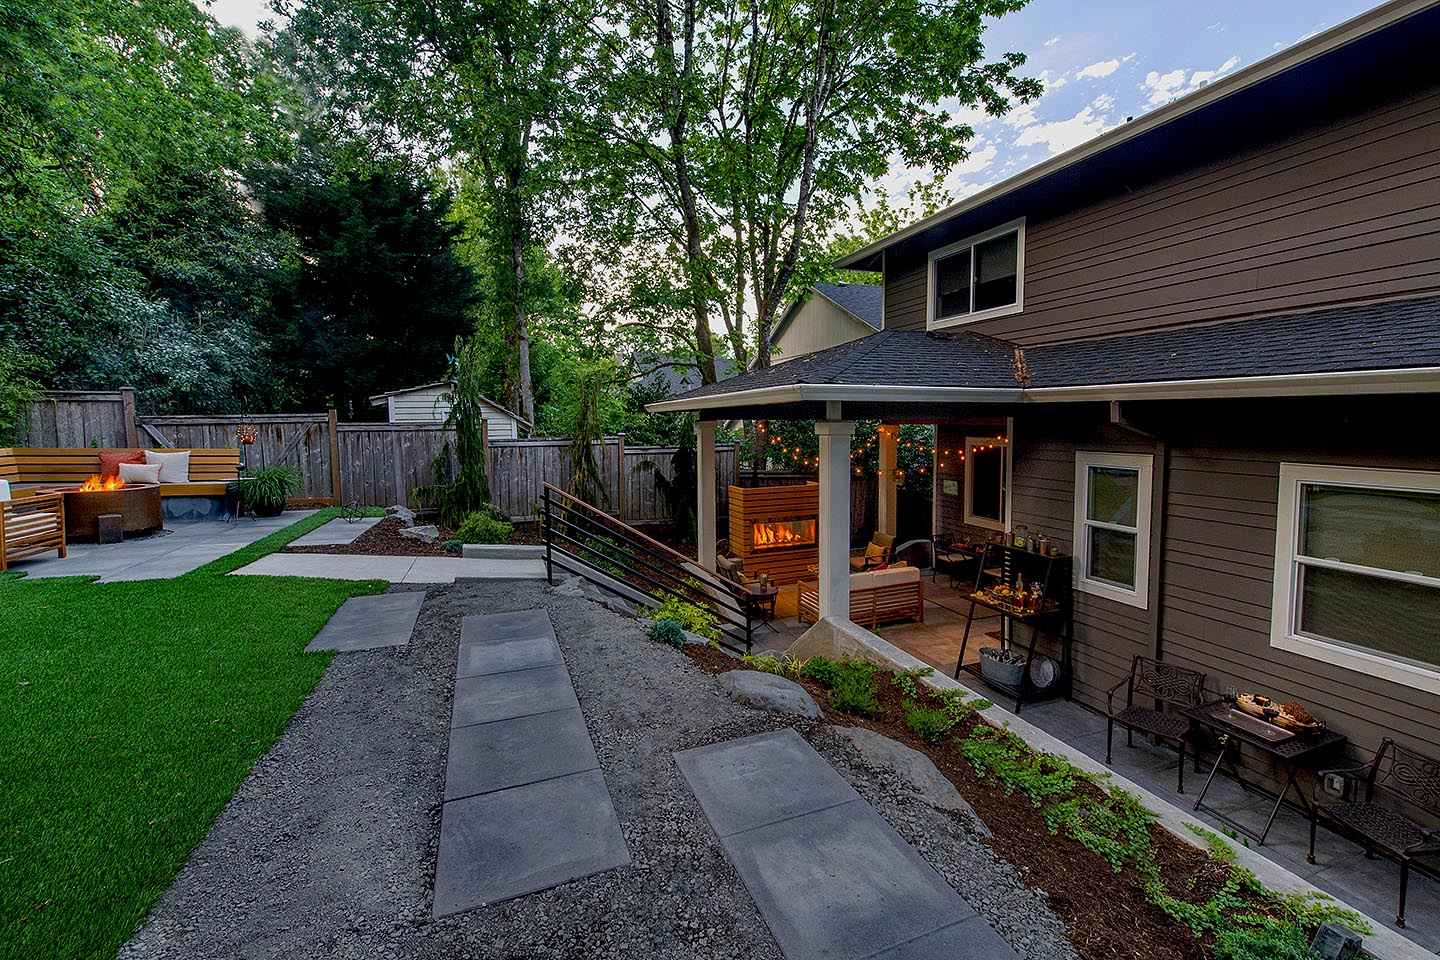 Landscaping A Sloped Backyard